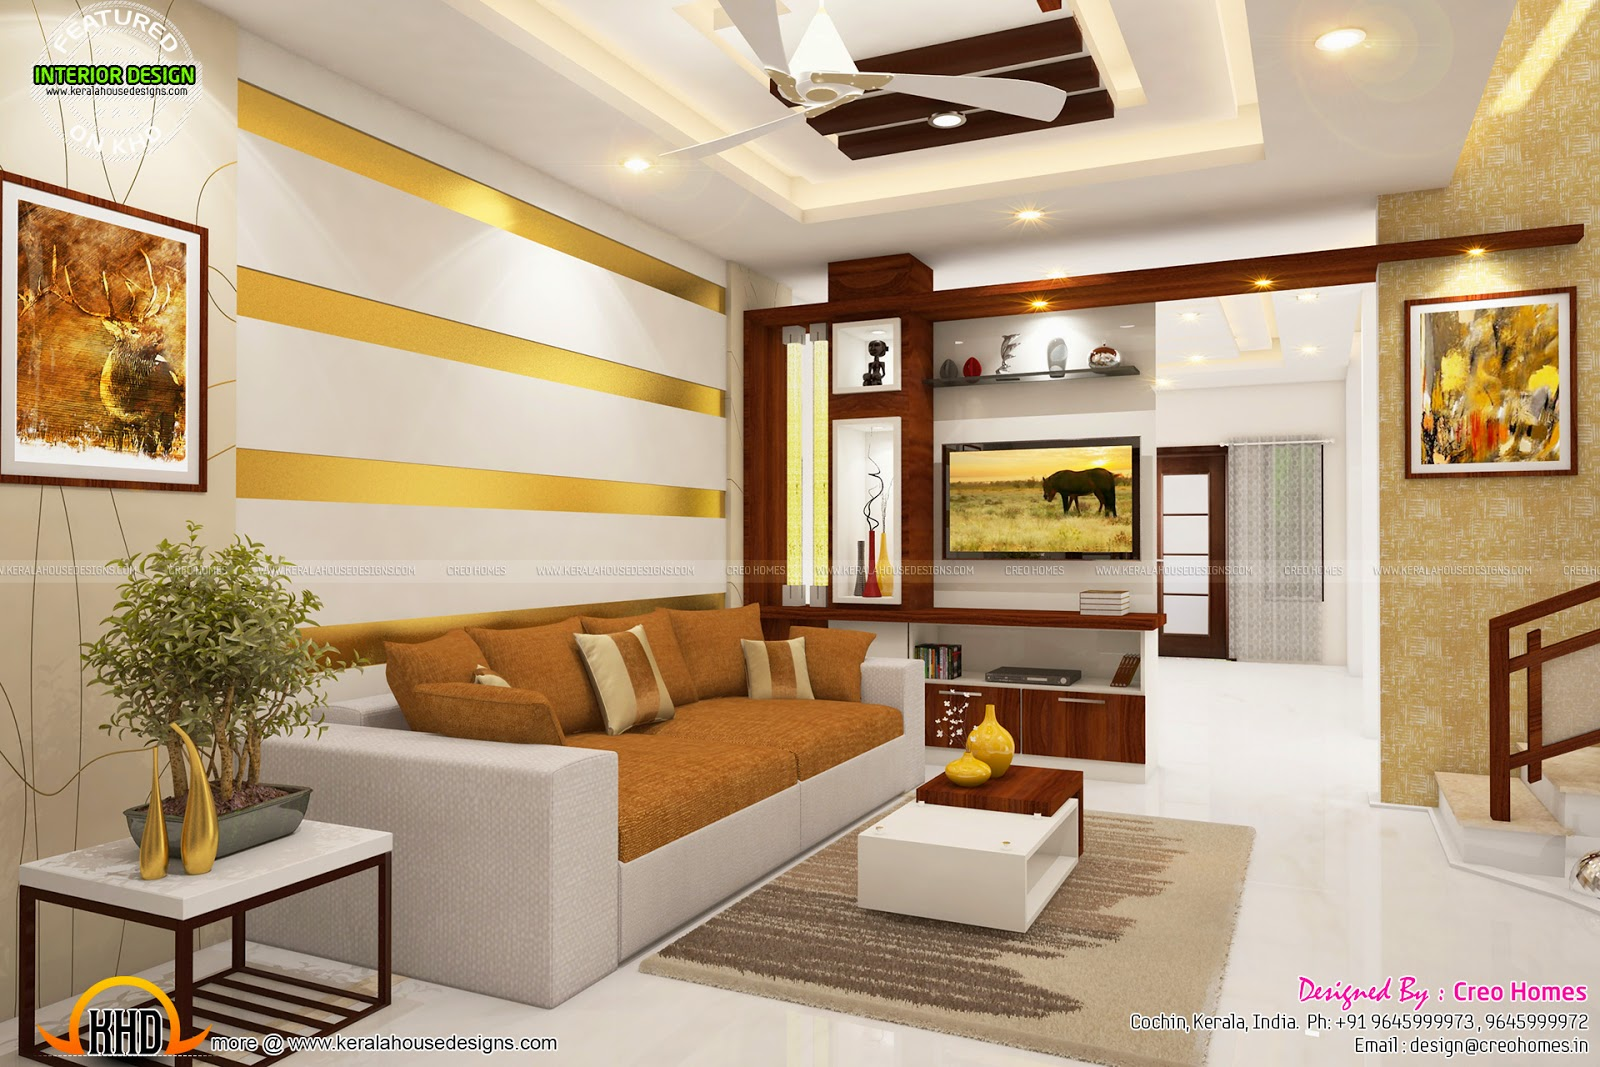 Total home interior solutions by creo homes kerala home for House plans with inside photos